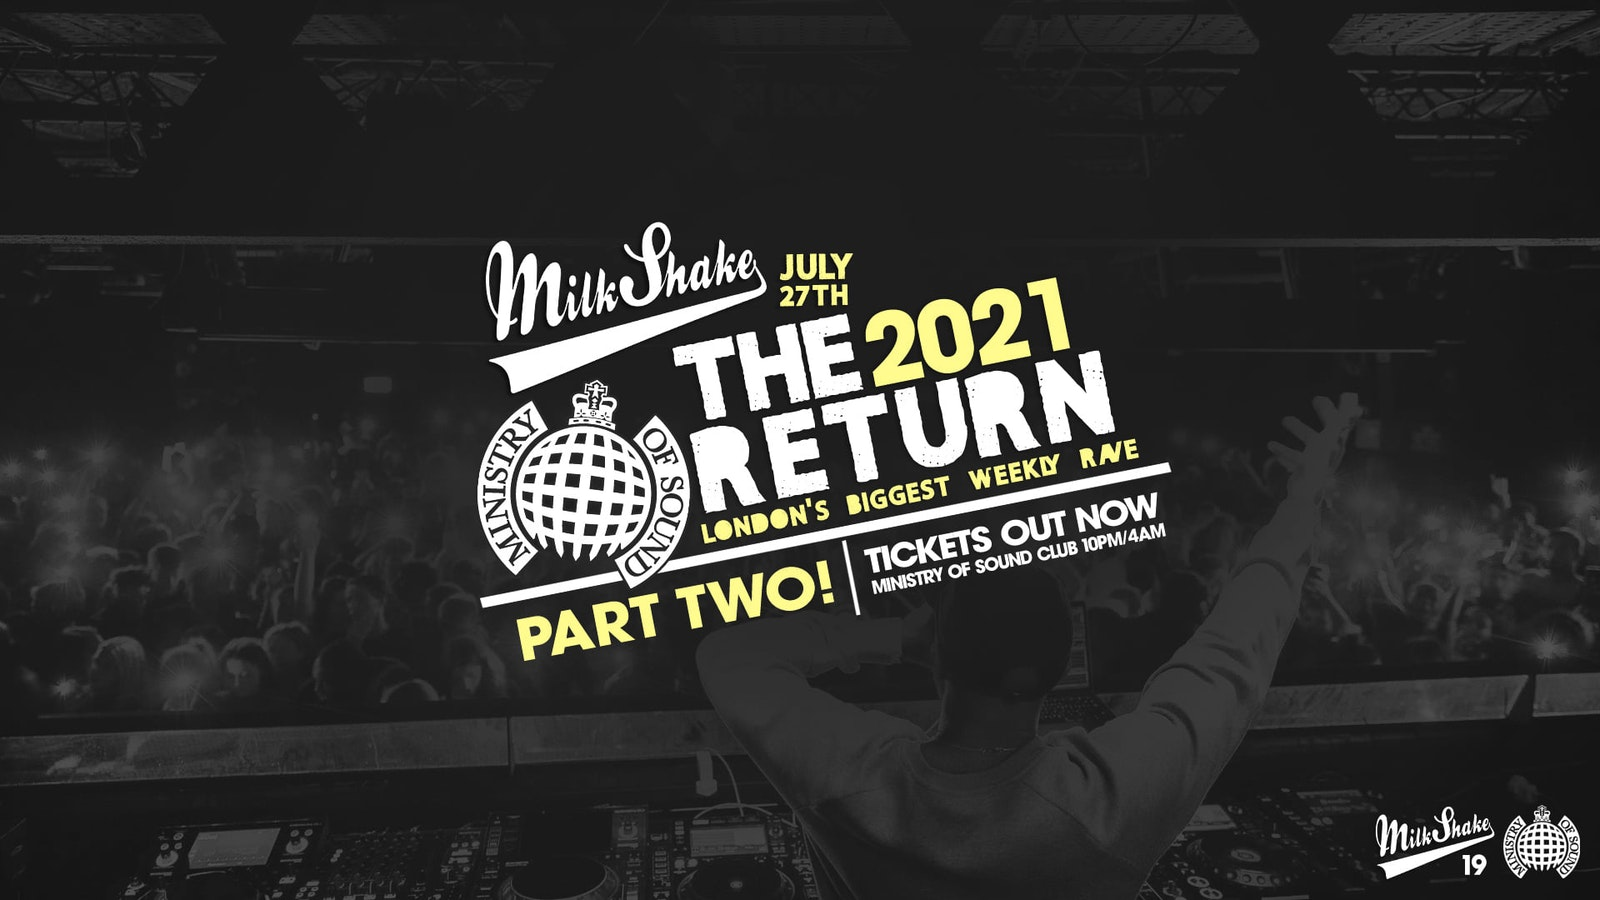 Ministry of Sound, Milkshake – The Official Return: PART 2  🔥  July 27th 2021!